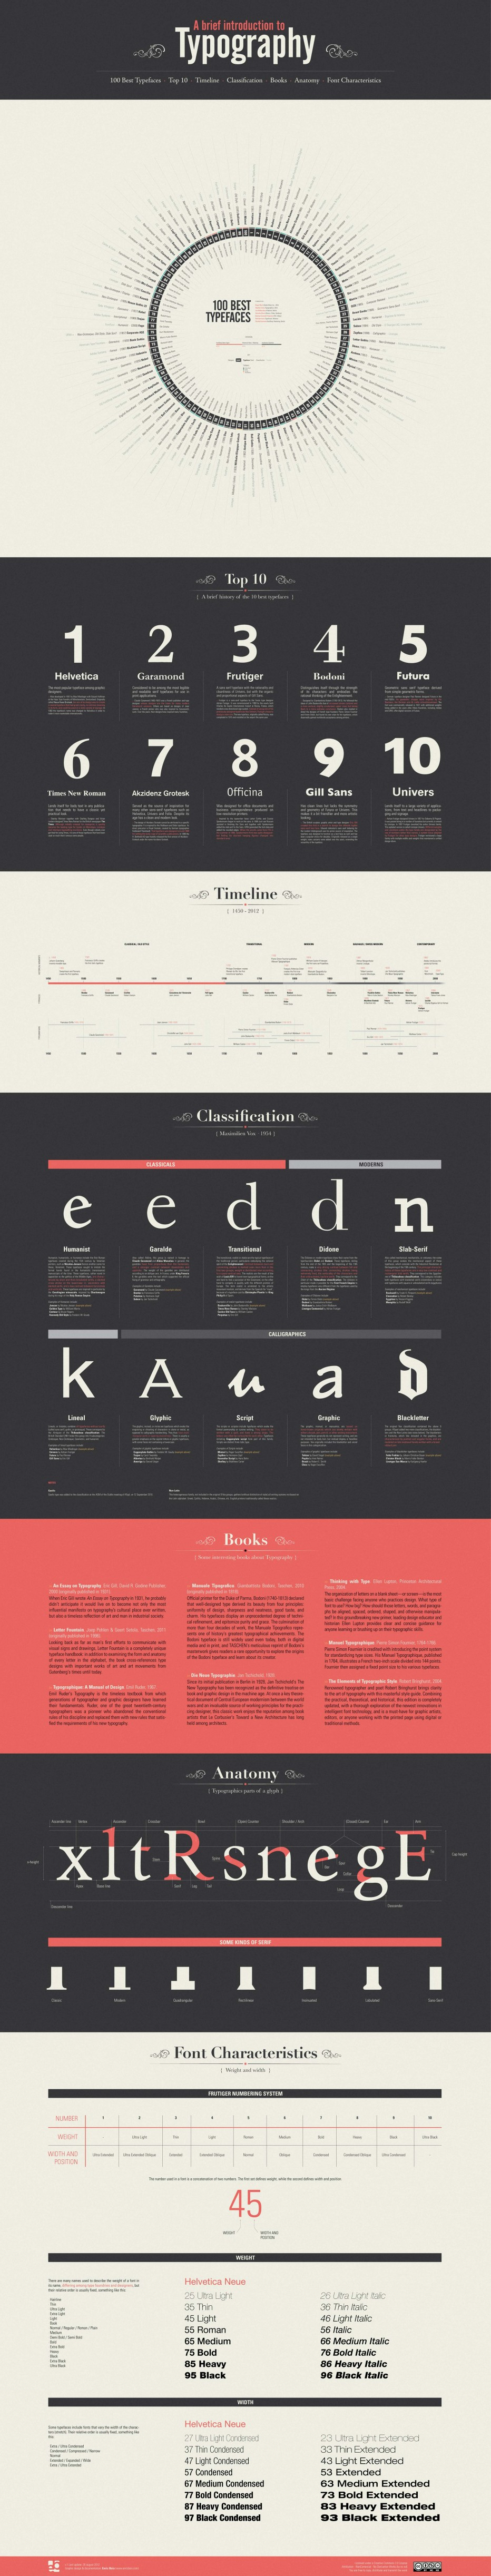 A Brief Introduction to Typography